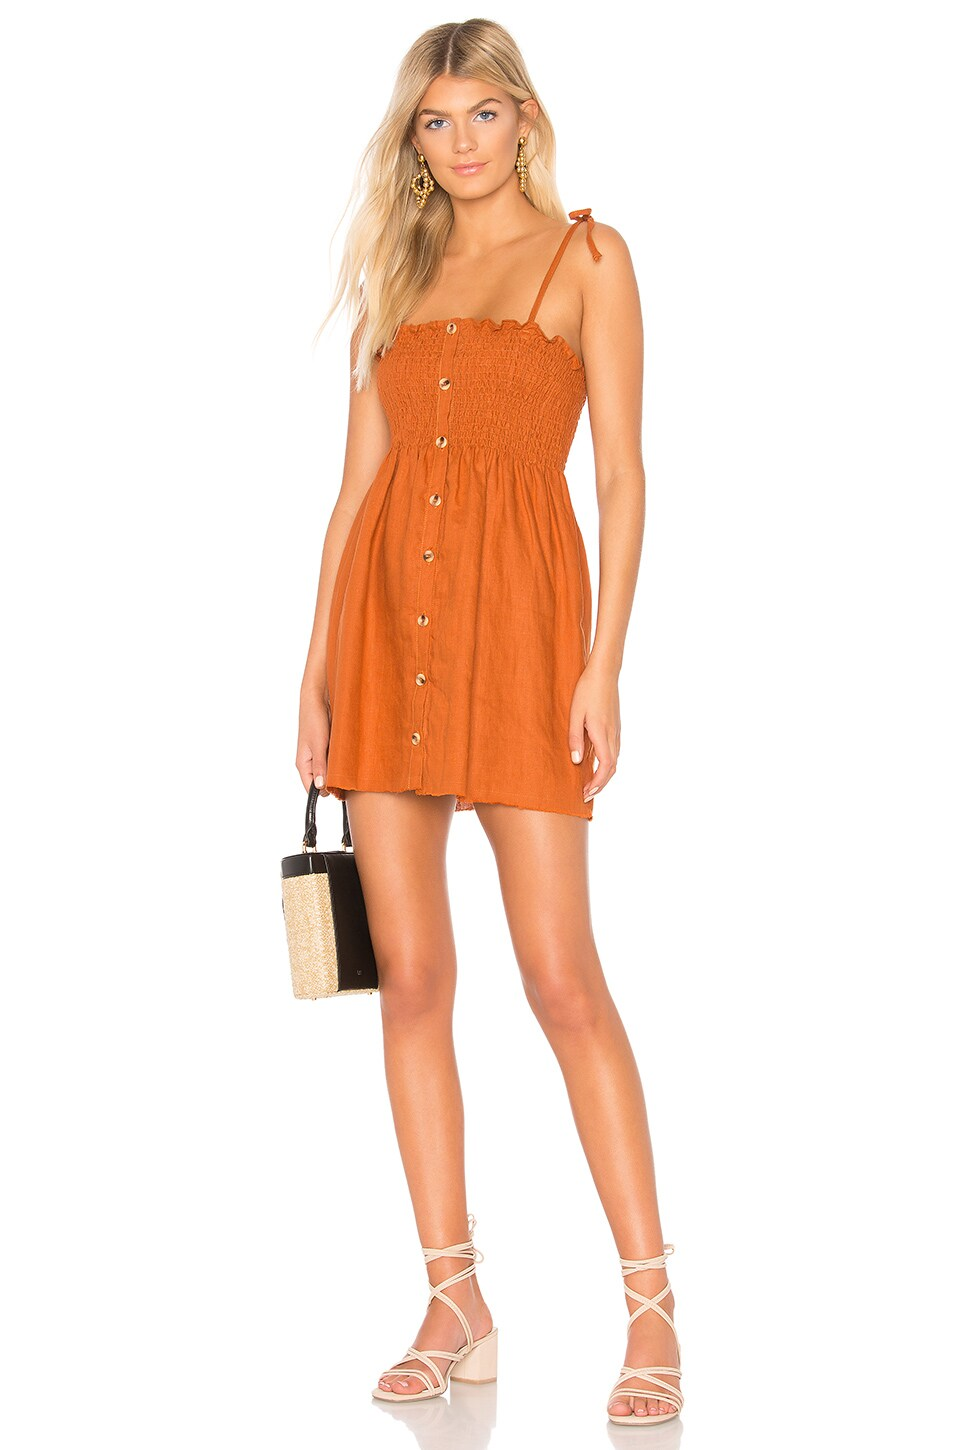 FAITHFULL THE BRAND Rosa Smocked Linen Mini Dress in Camel